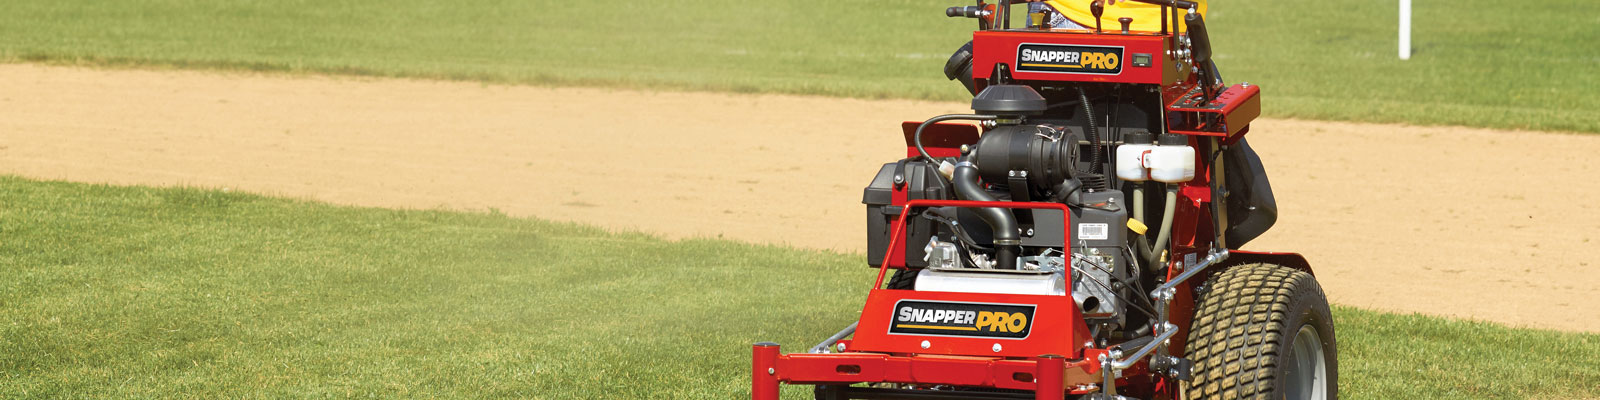 Snapper Pro Stand-On Mower